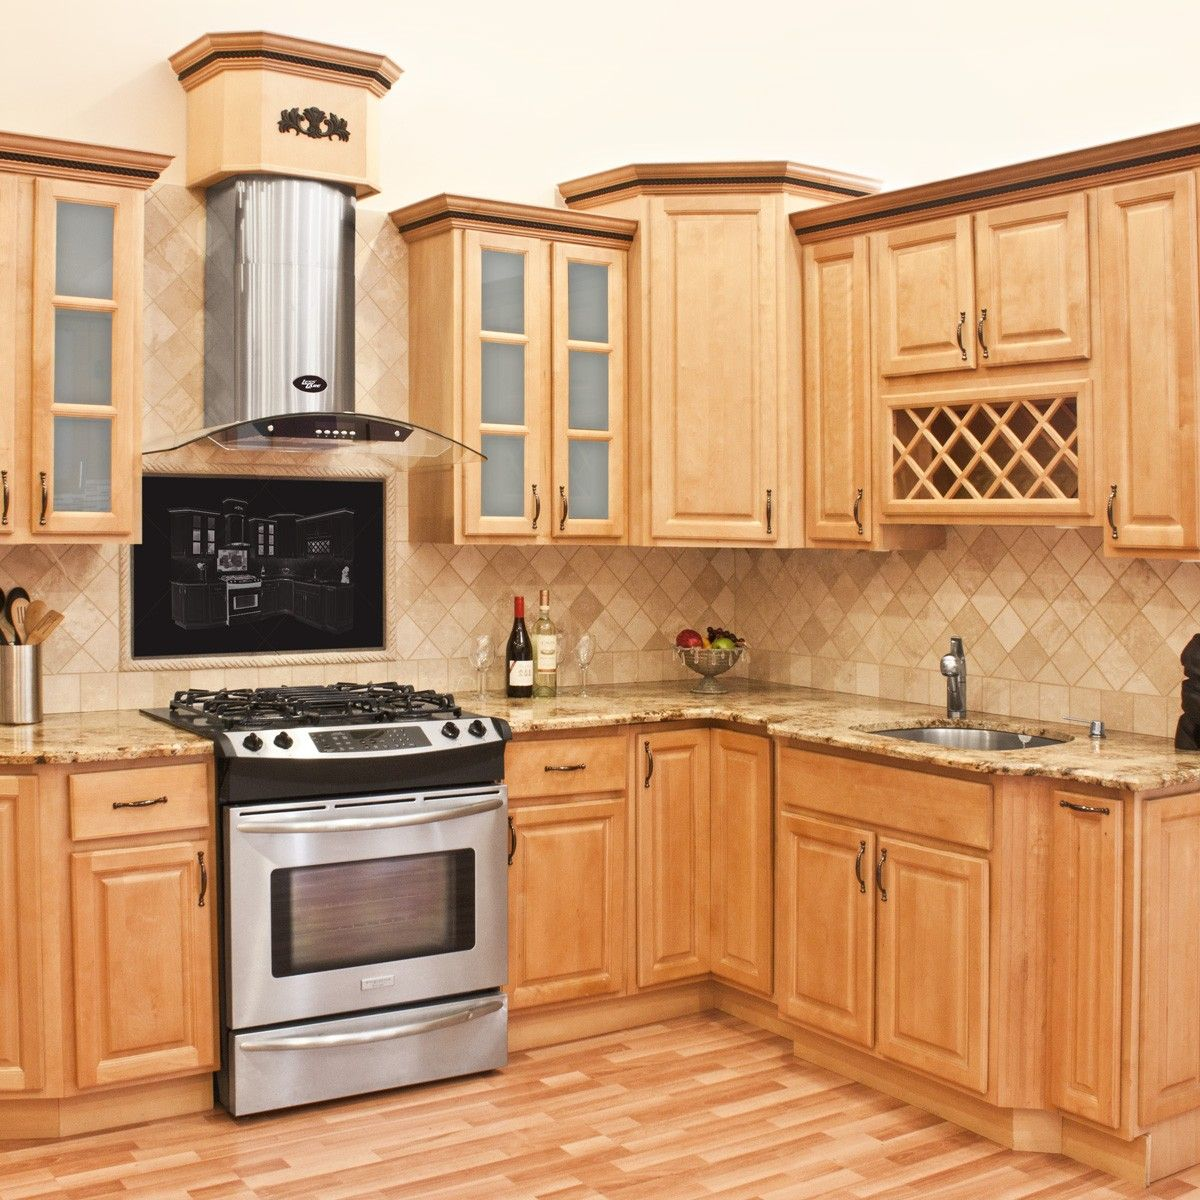 Lesscare Richmond 10x10 Kitchen Cabinets Group Sale Maple Kitchen Cabinets Kitchen Remodel Small Kitchen Renovation